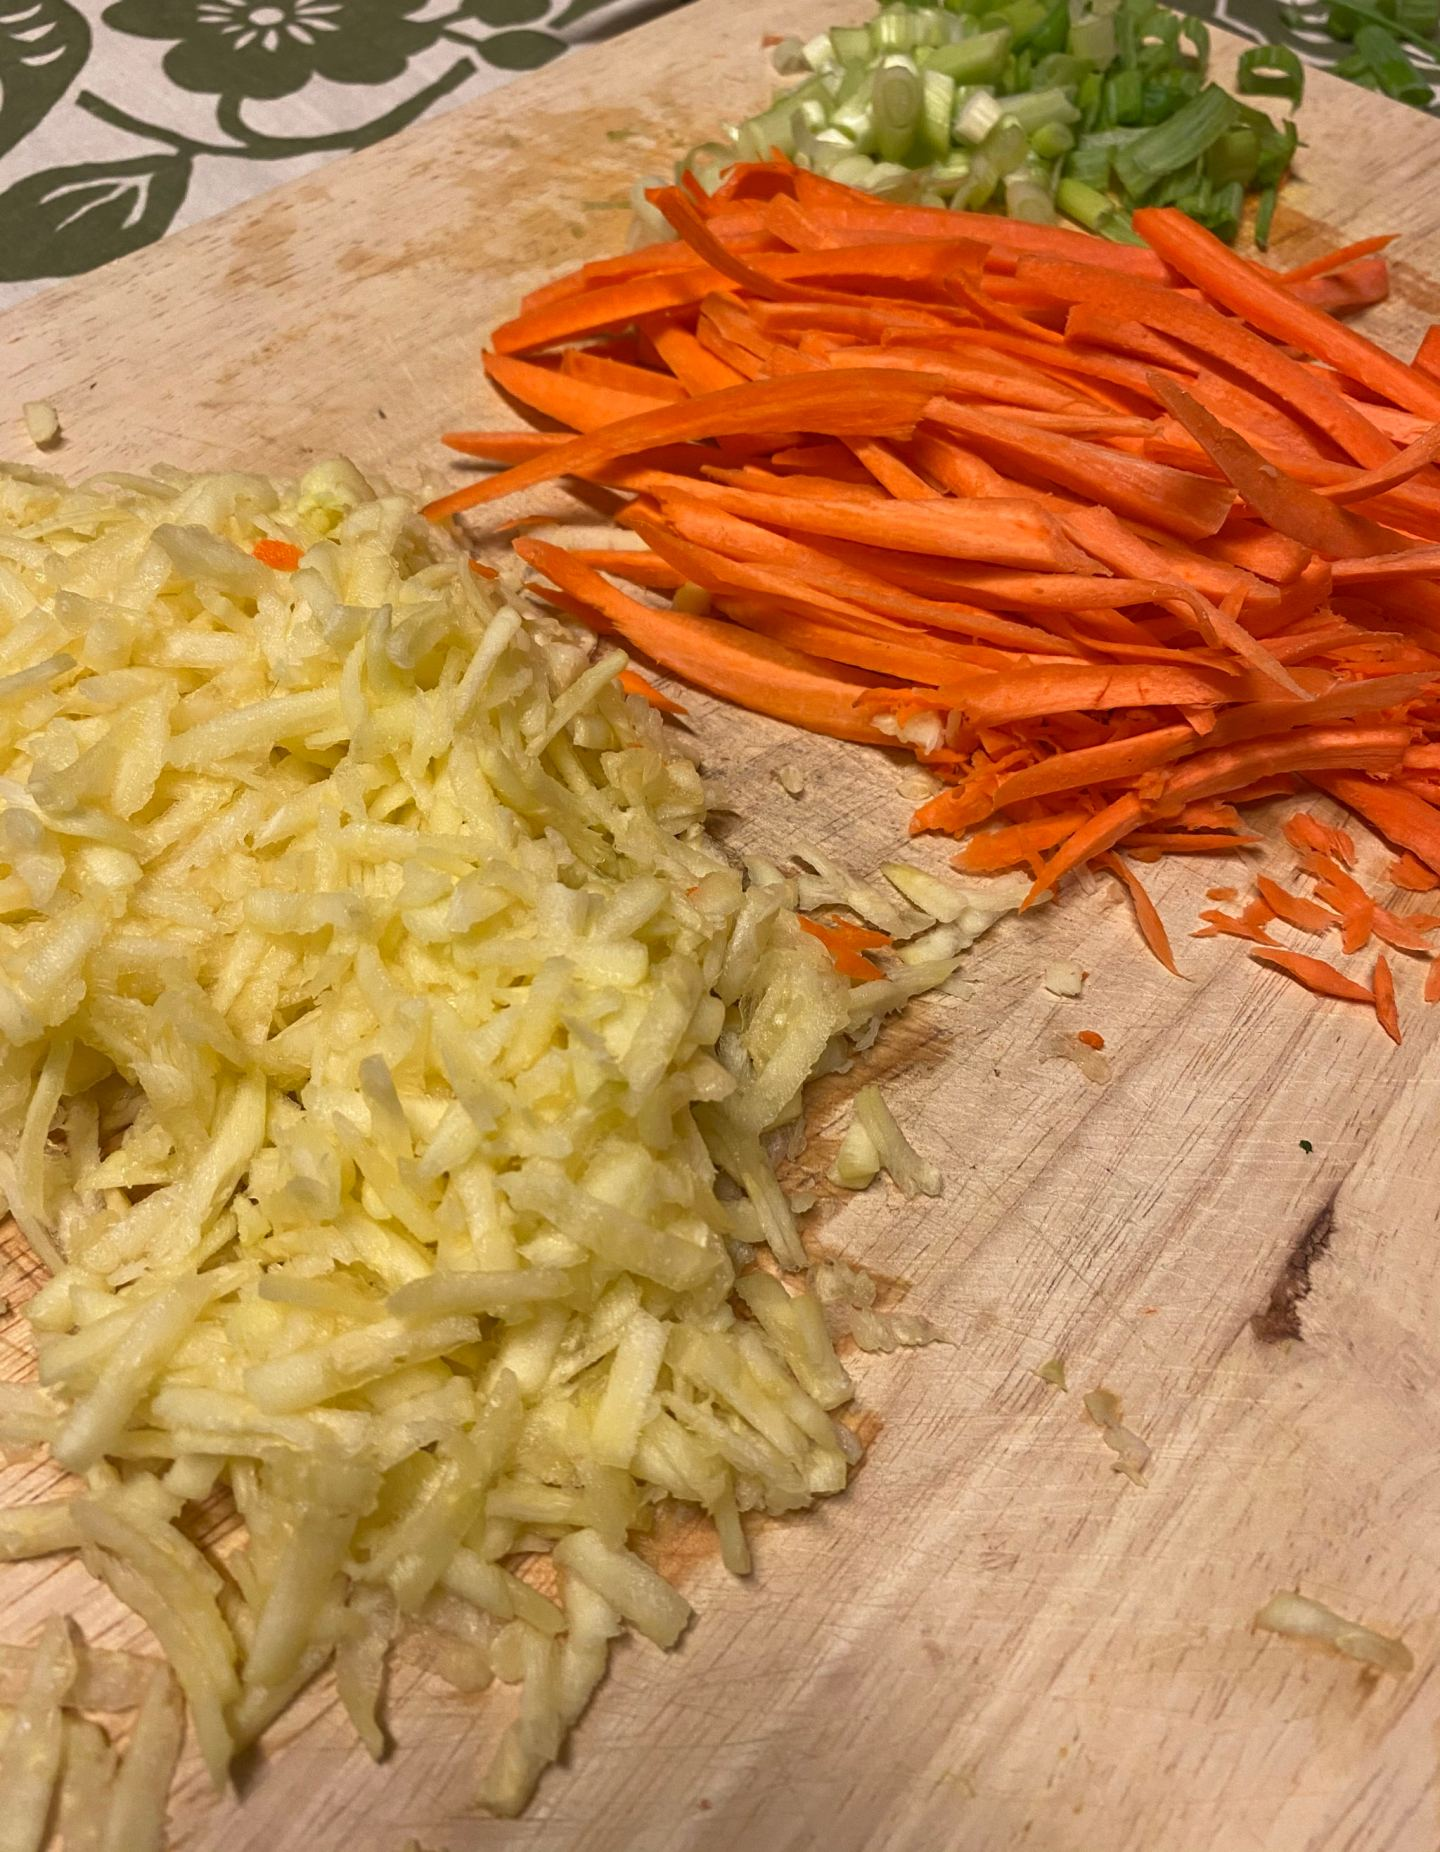 Shredded zucchini, chopped carrots, and scallions on a wooden board.